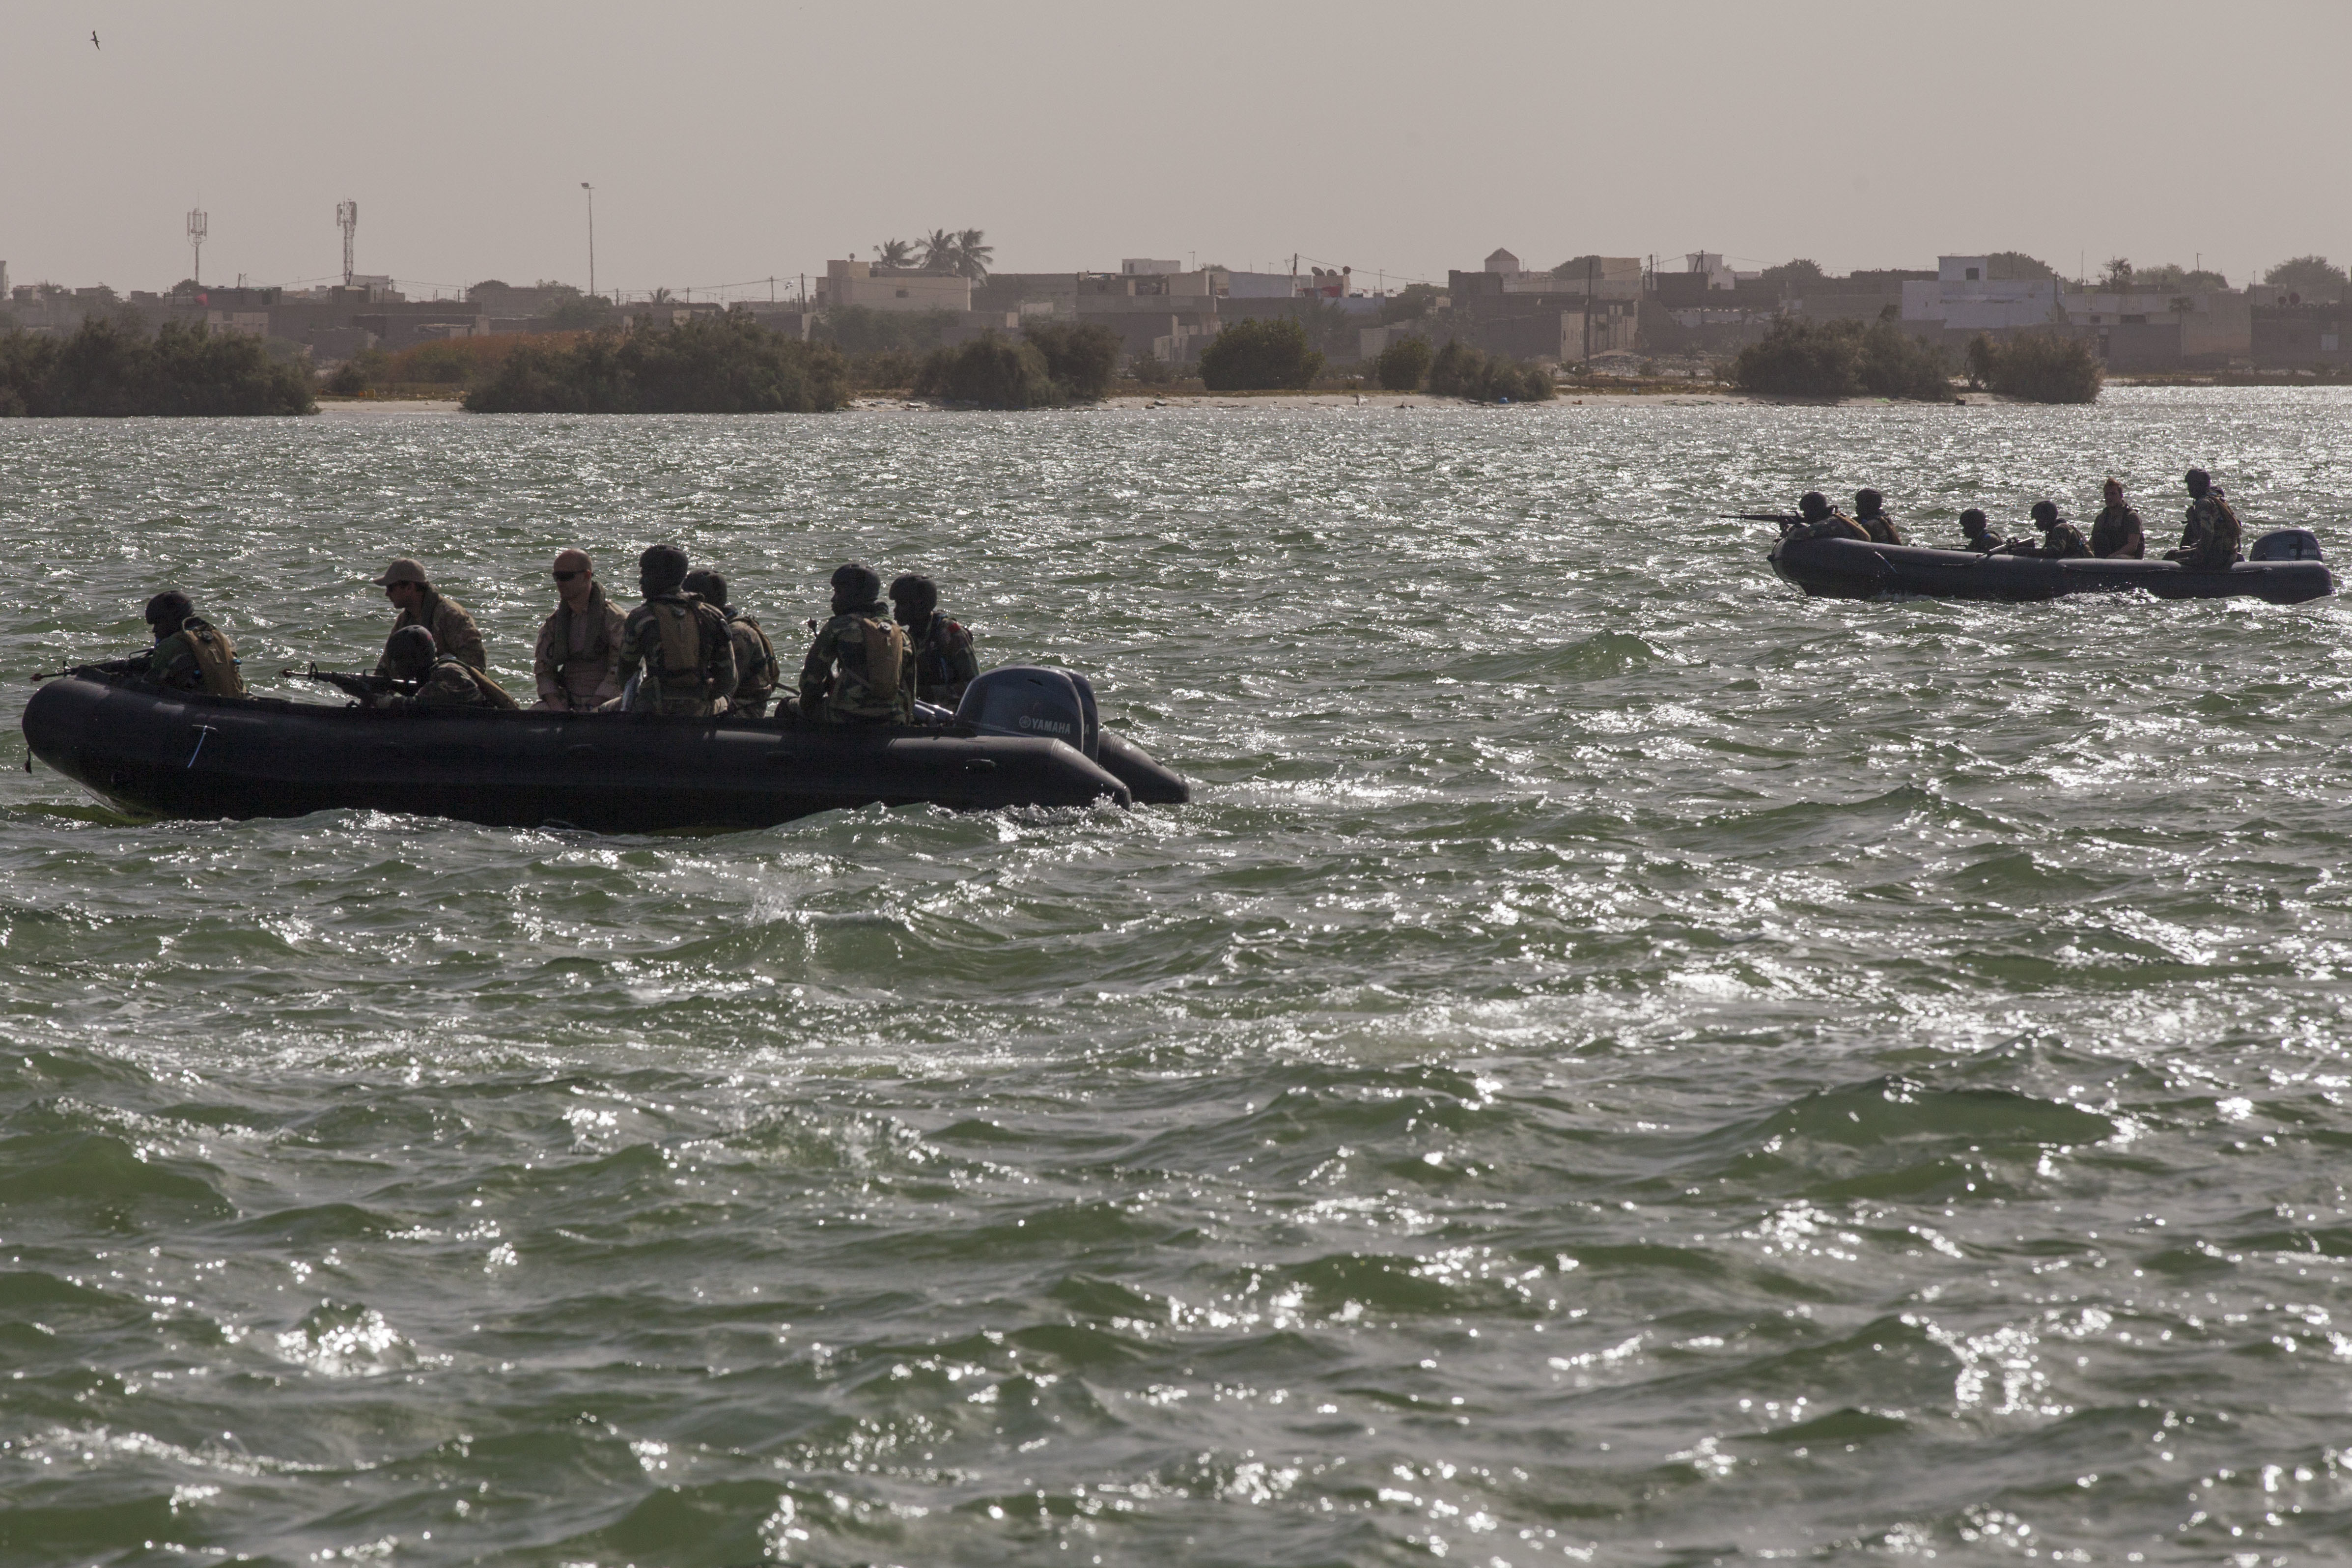 Senegalese Navy Special Operations Forces ride in Zodiac boats during beach landing training in Saint Louis, Senegal, Feb. 11, 2016. The Senegalese Navy Special Operations Forces were training with the Netherlands and U.S. Special Operations Forces as a part of Flintlock 2016. Flintlock is an African-led military exercise focused on security, counter-terrorism and military humanitarian support to outlying areas. (U.S. Army Photo by Spc. David M. Shefchuk/Released)